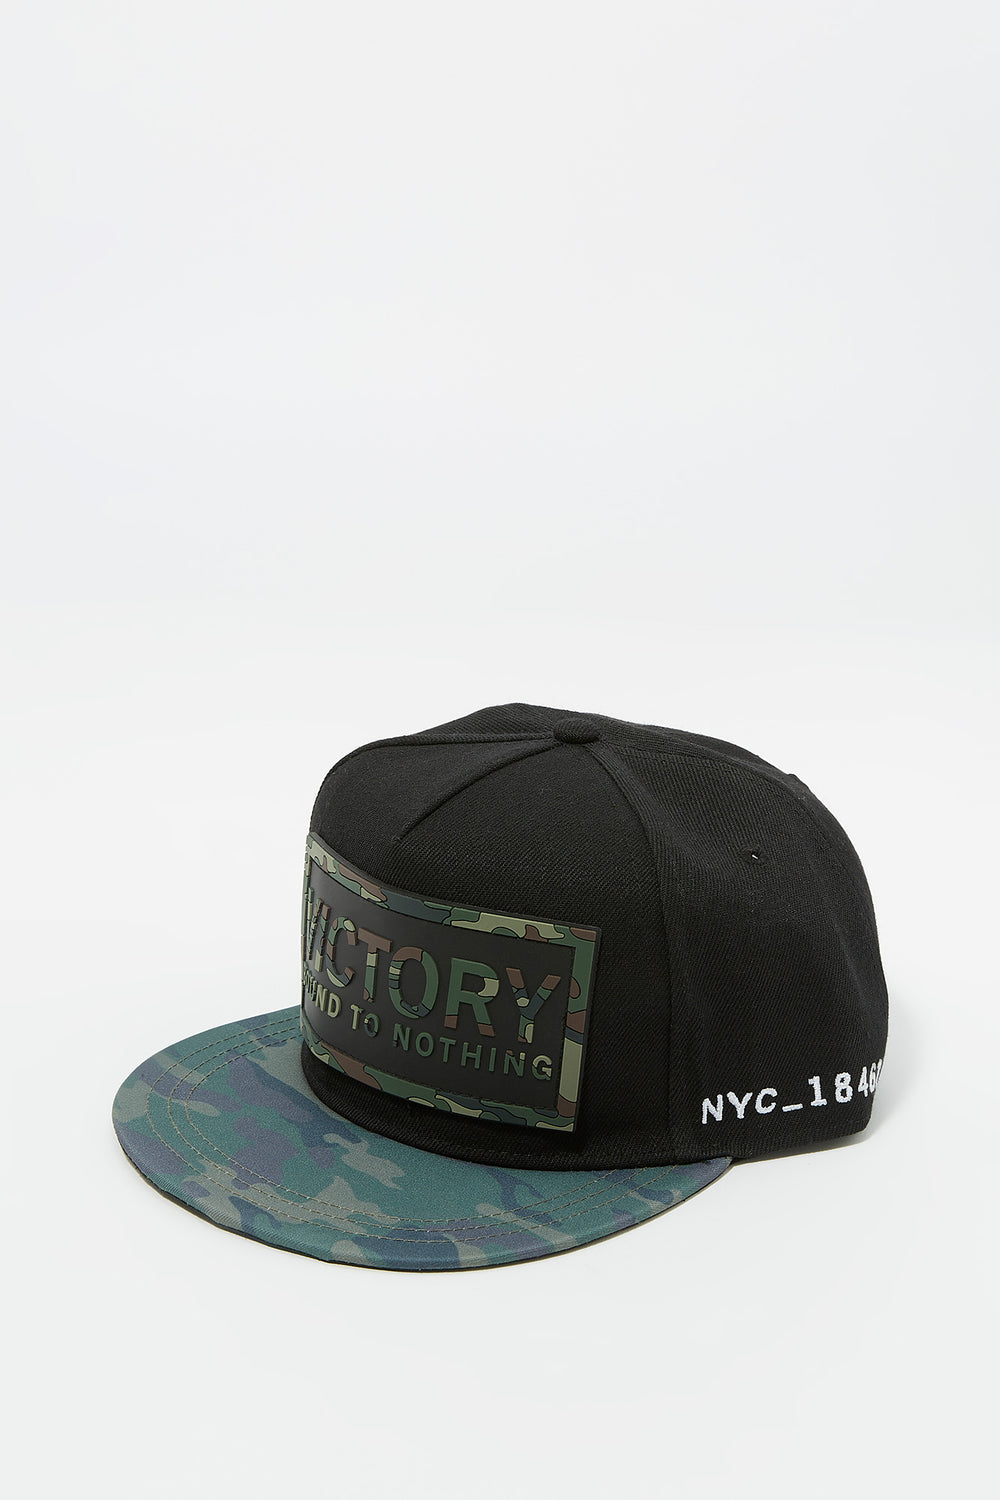 Camo Victory Rubber Graphic Snapback Baseball Hat Camouflage